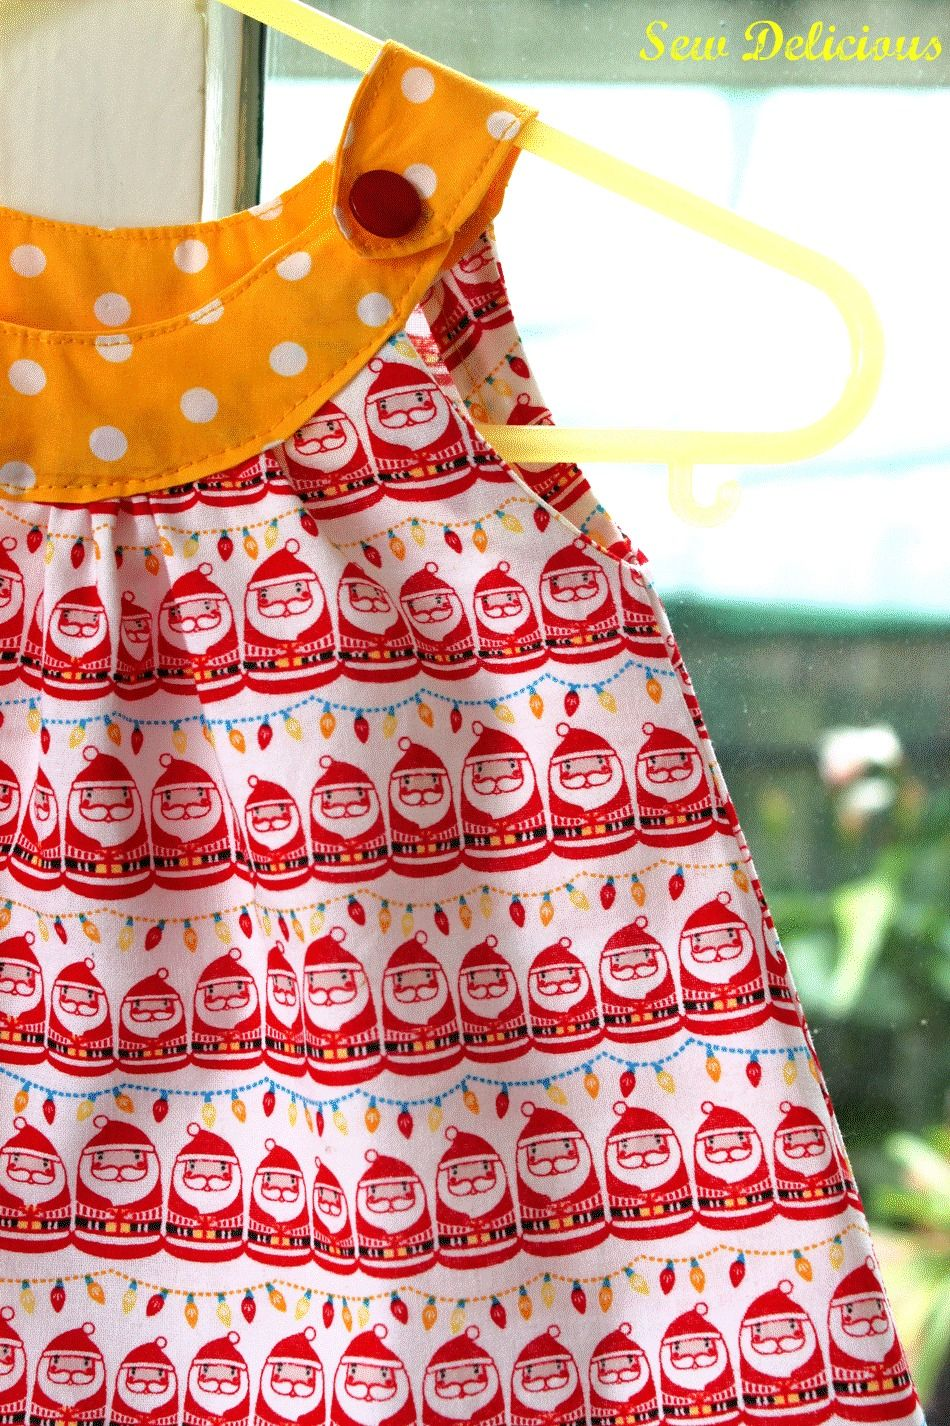 Sew Delicious: Free Patterns Round Up | sewing patterns | Pinterest ...